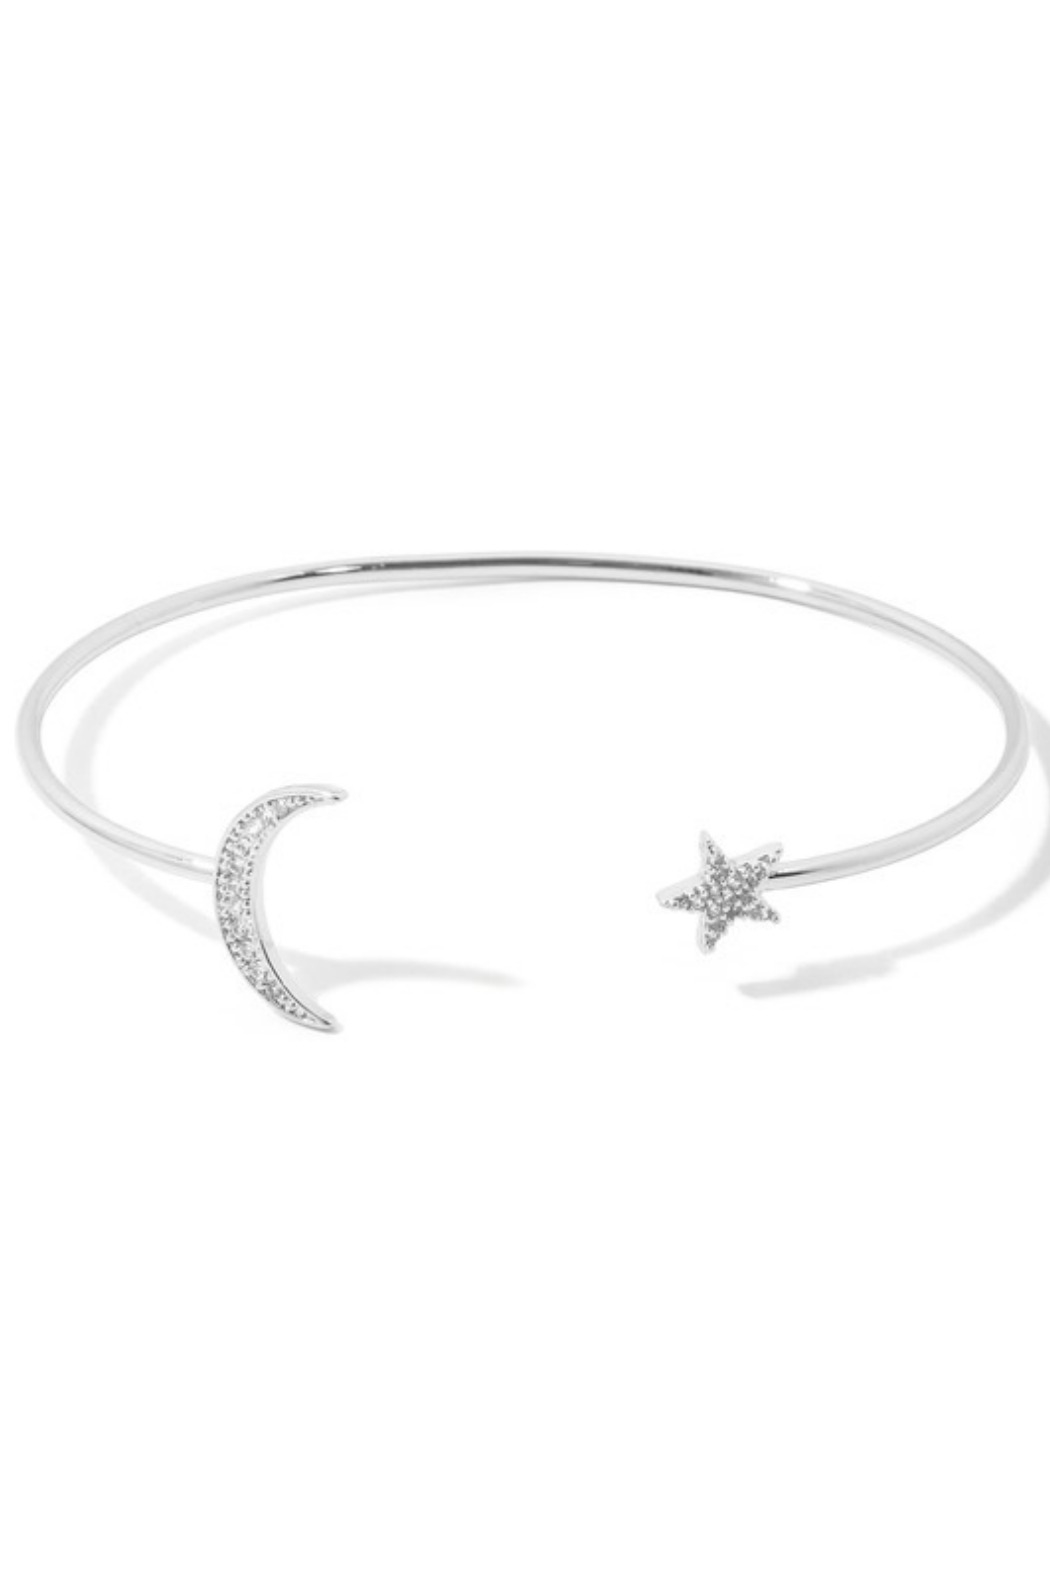 Anarchy Street Star + Moon Cuff Bracelet - Main Image